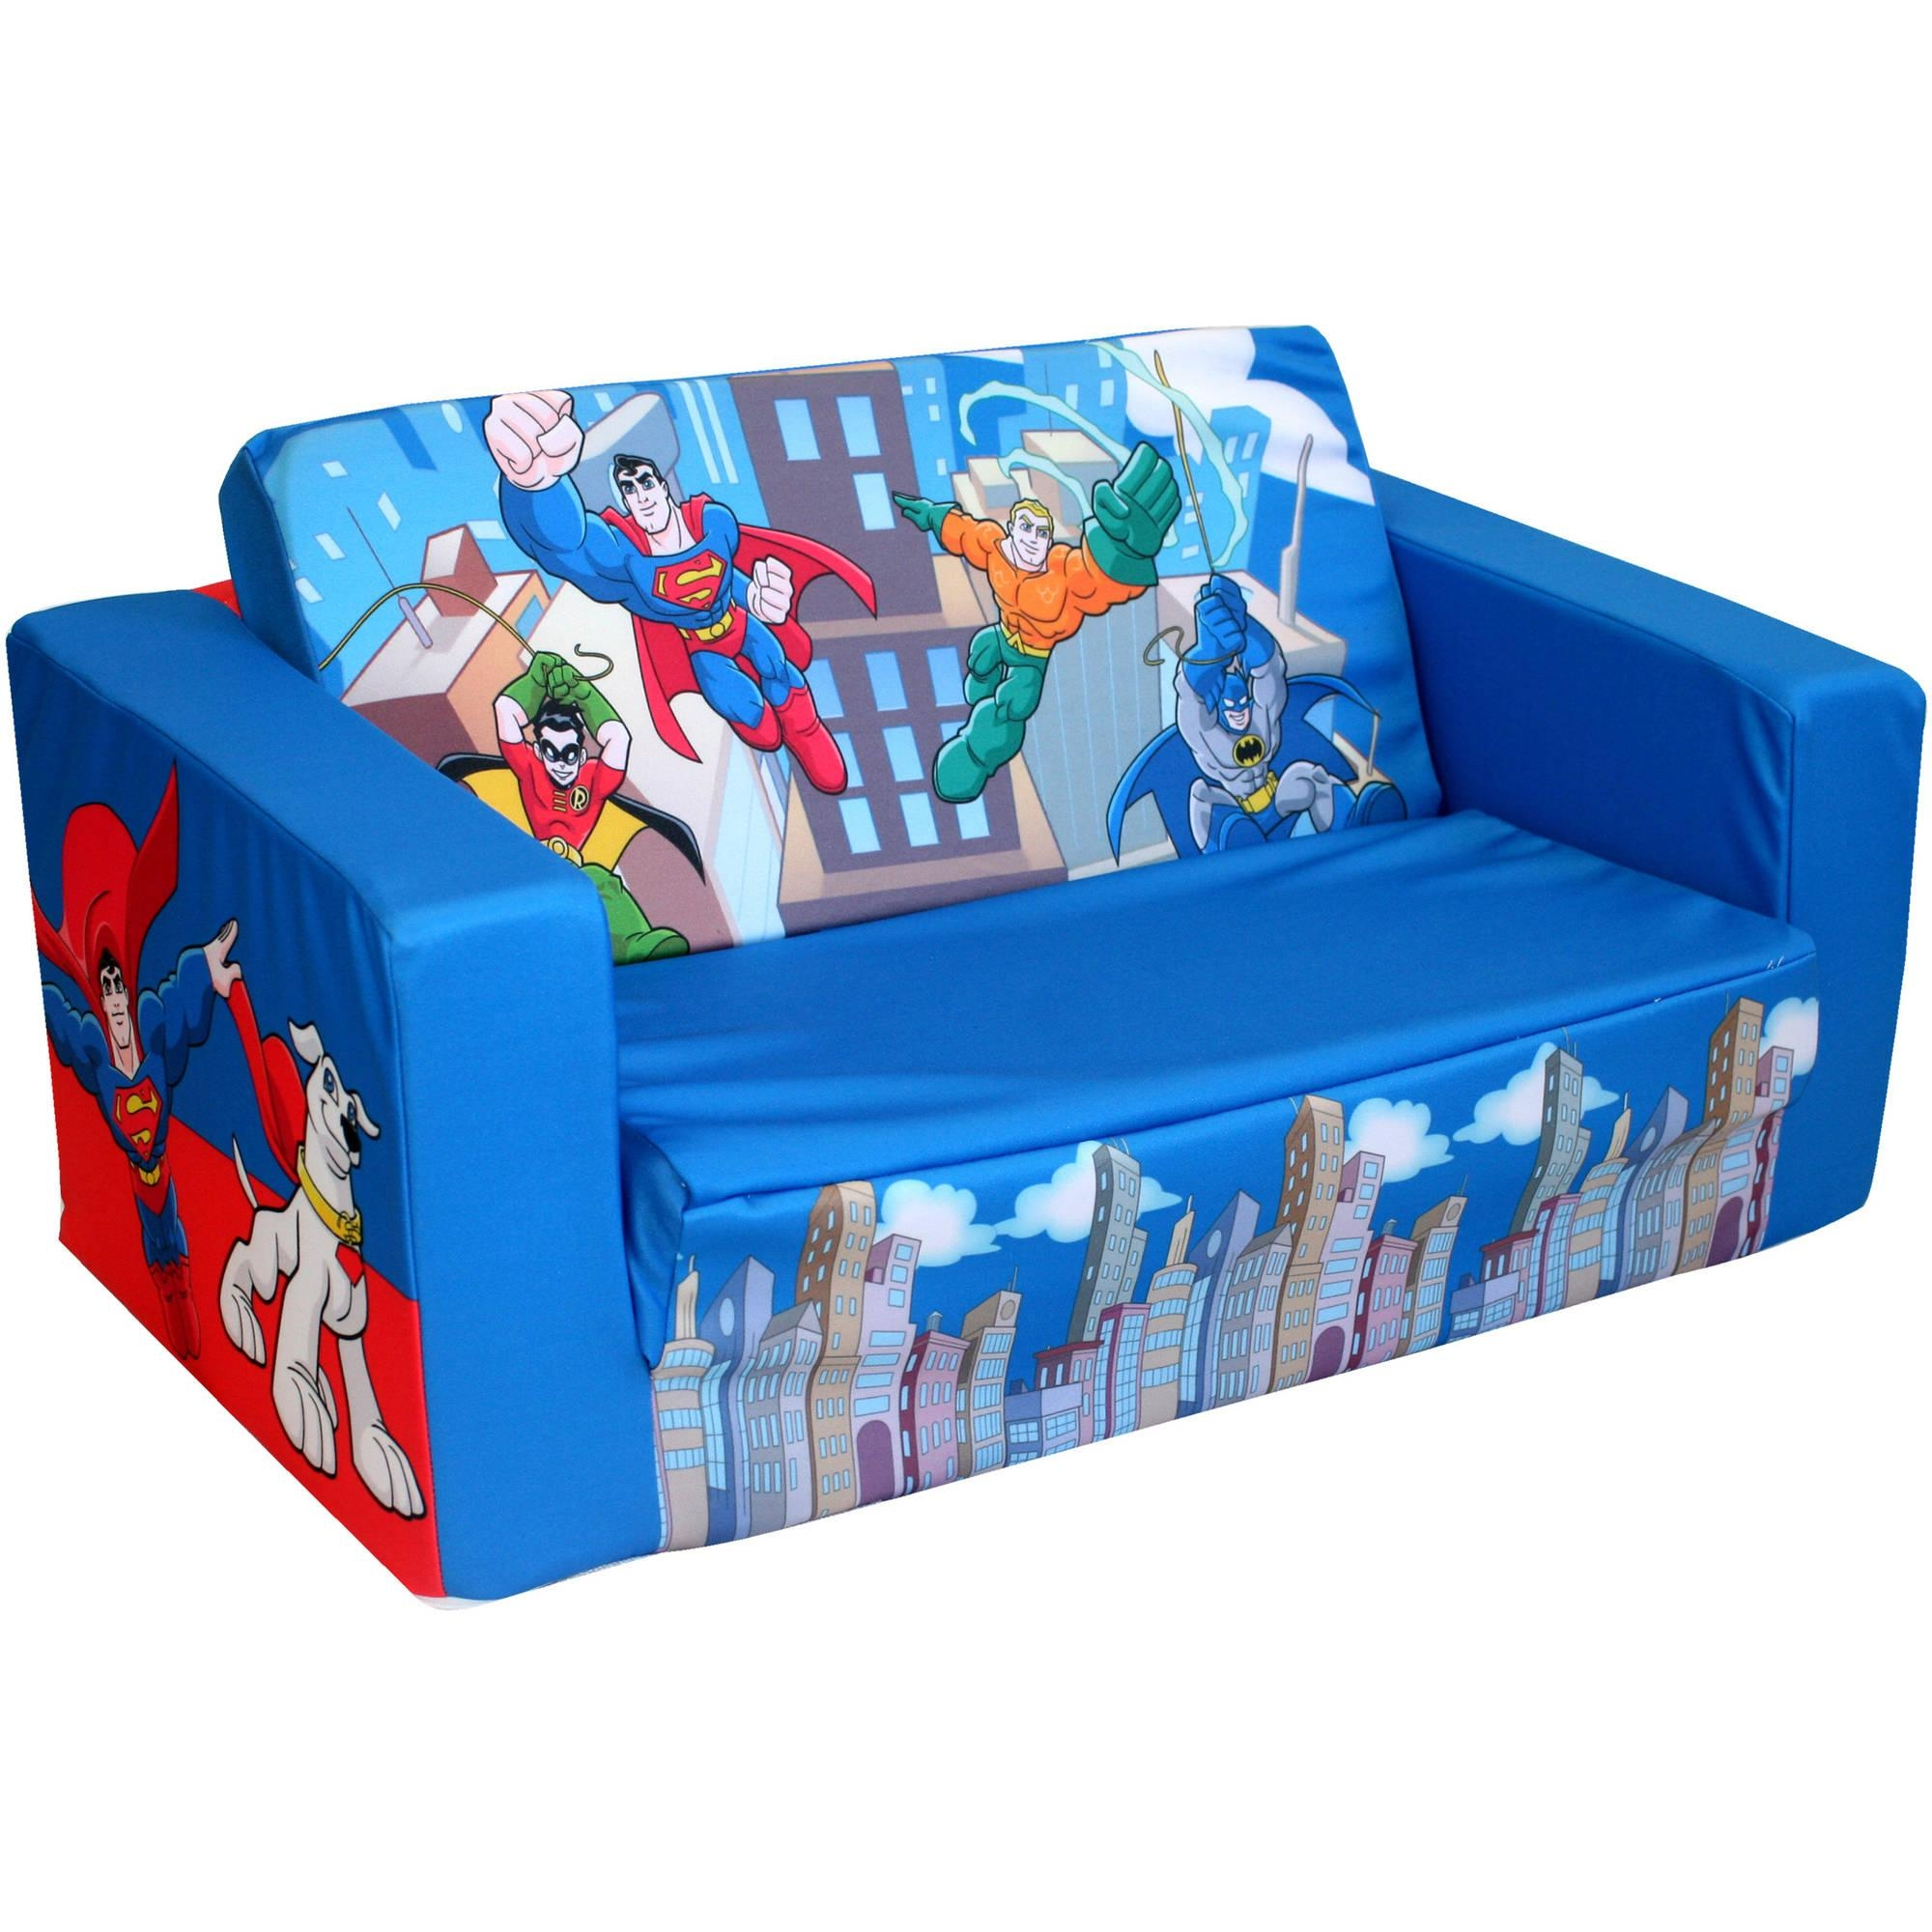 Dc Super Friends Mini Heroes Kids Flip S – Walmart With Regard To Flip Open Sofas For Toddlers (View 16 of 20)